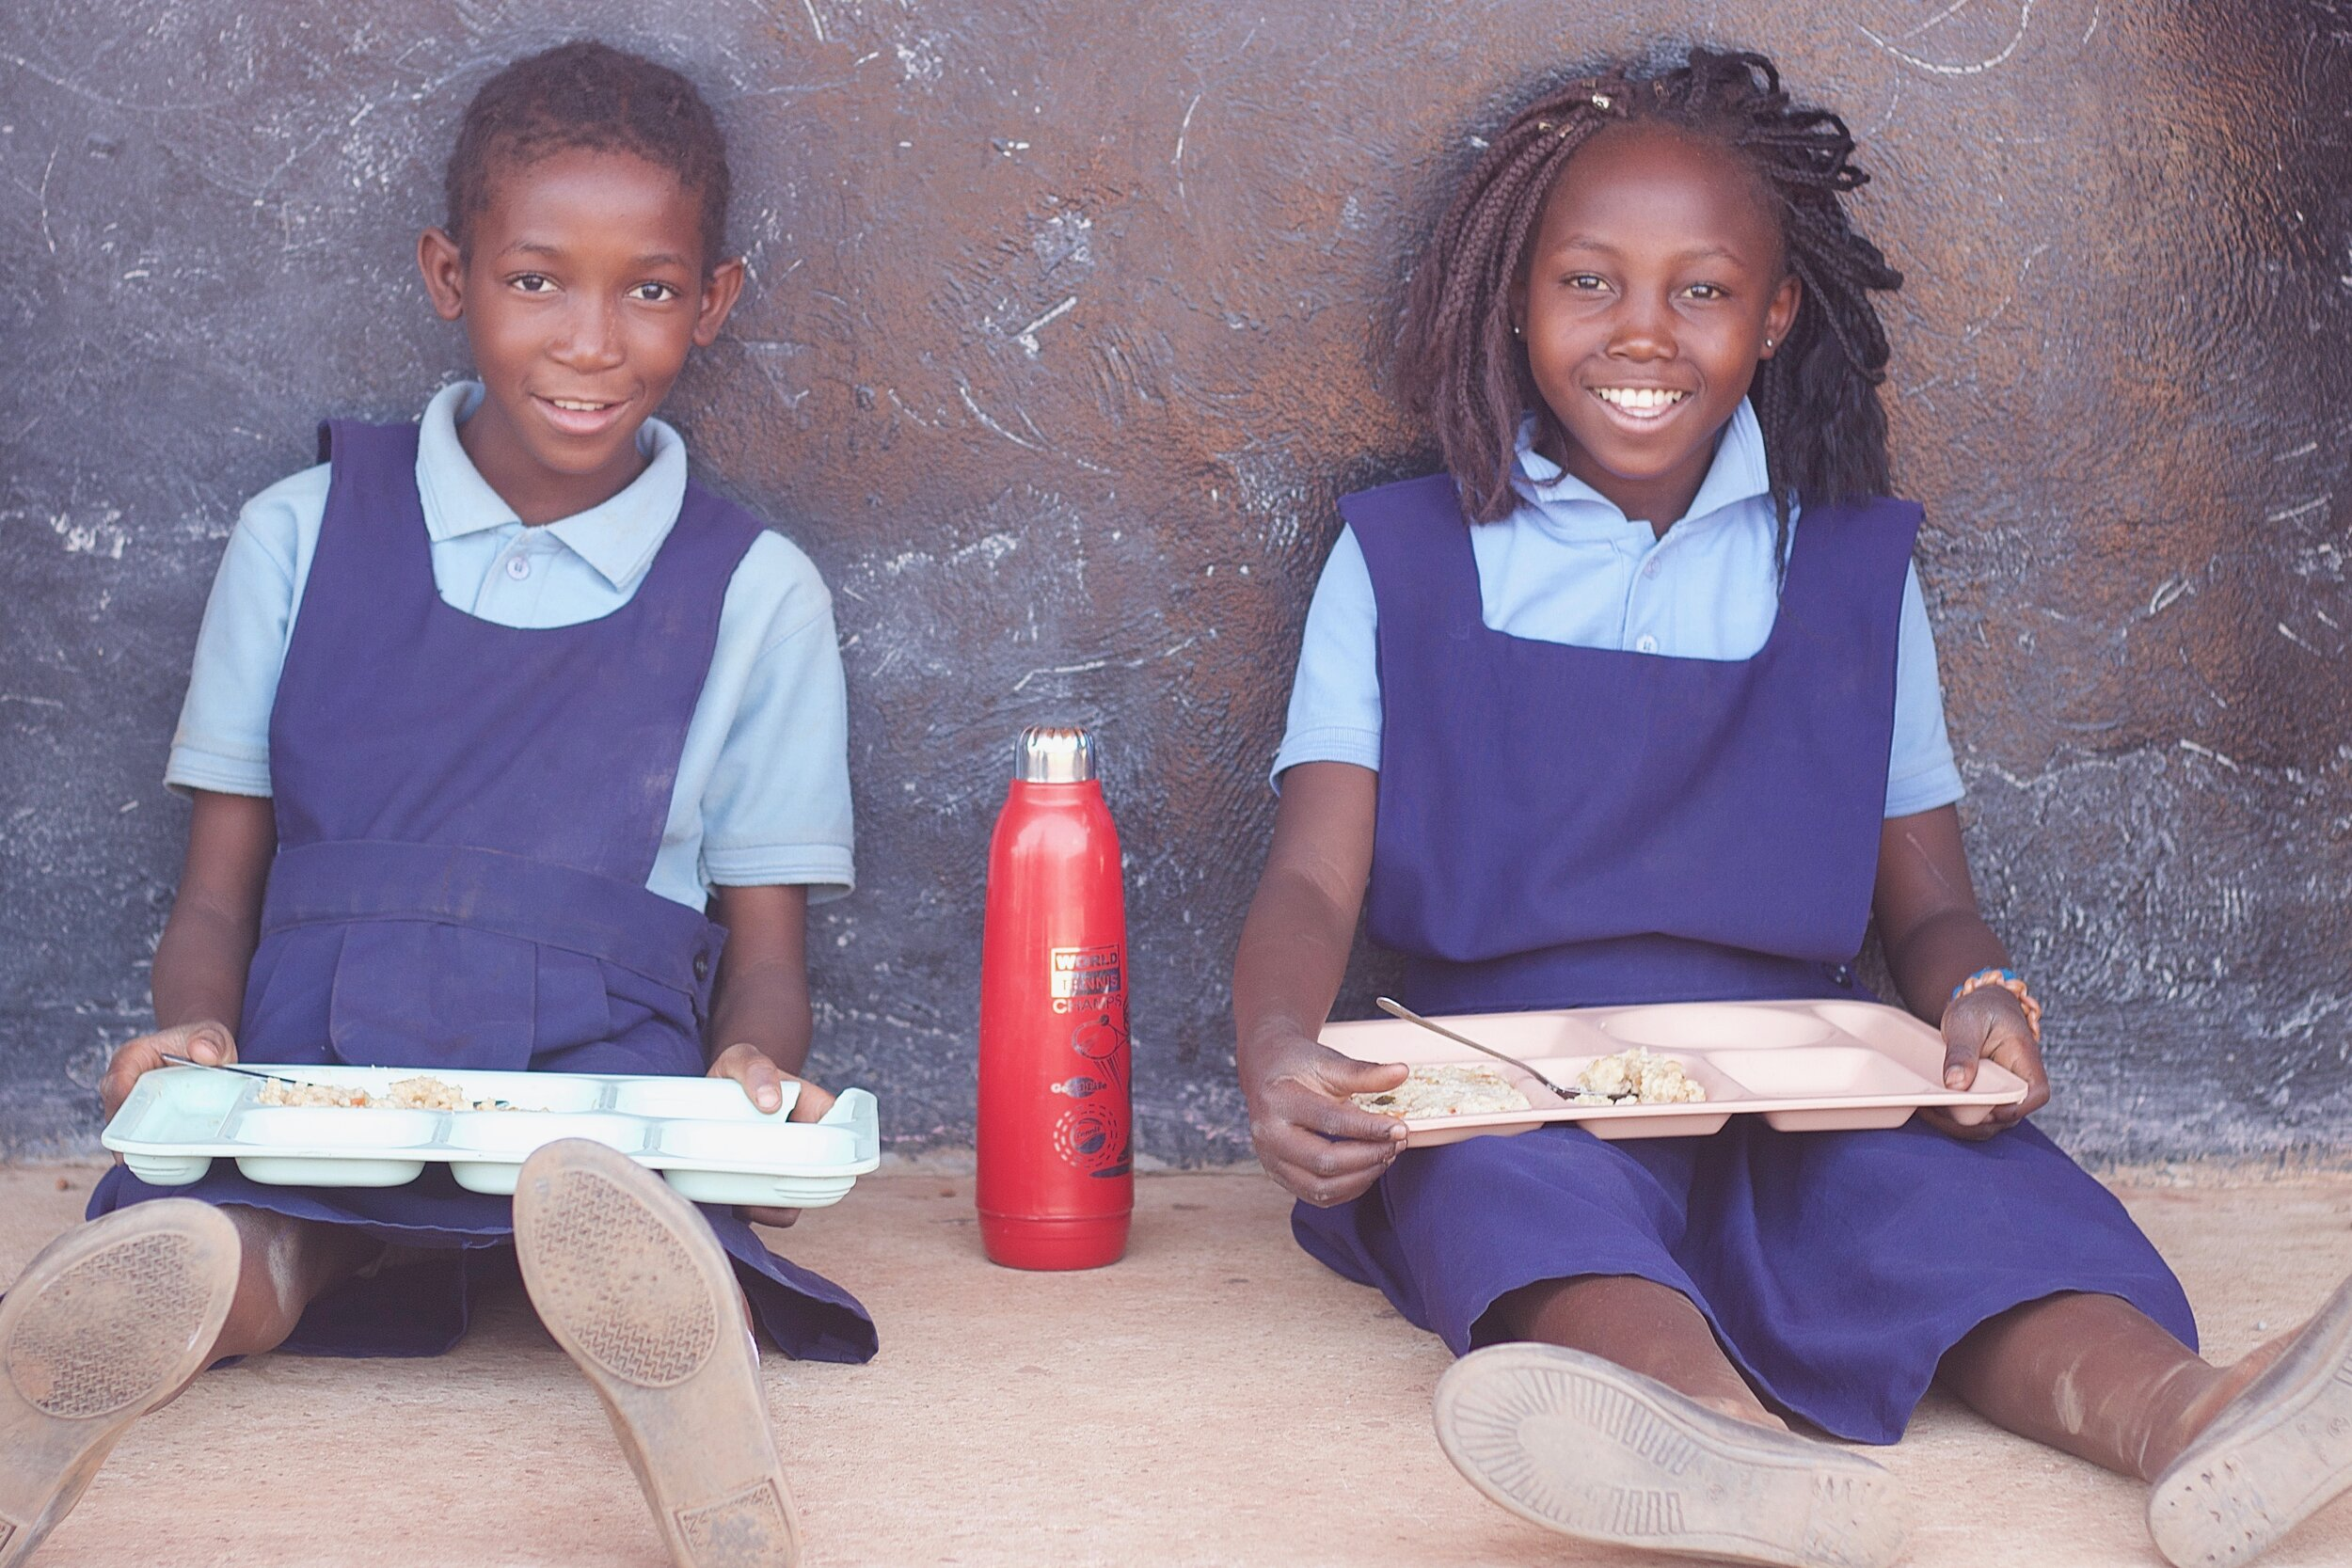 God provides so much throughout the school day, including two meals and a snack! Before students eat, they bless their food. They thank God for the people who prepare it and ask God to use it to bring energy.